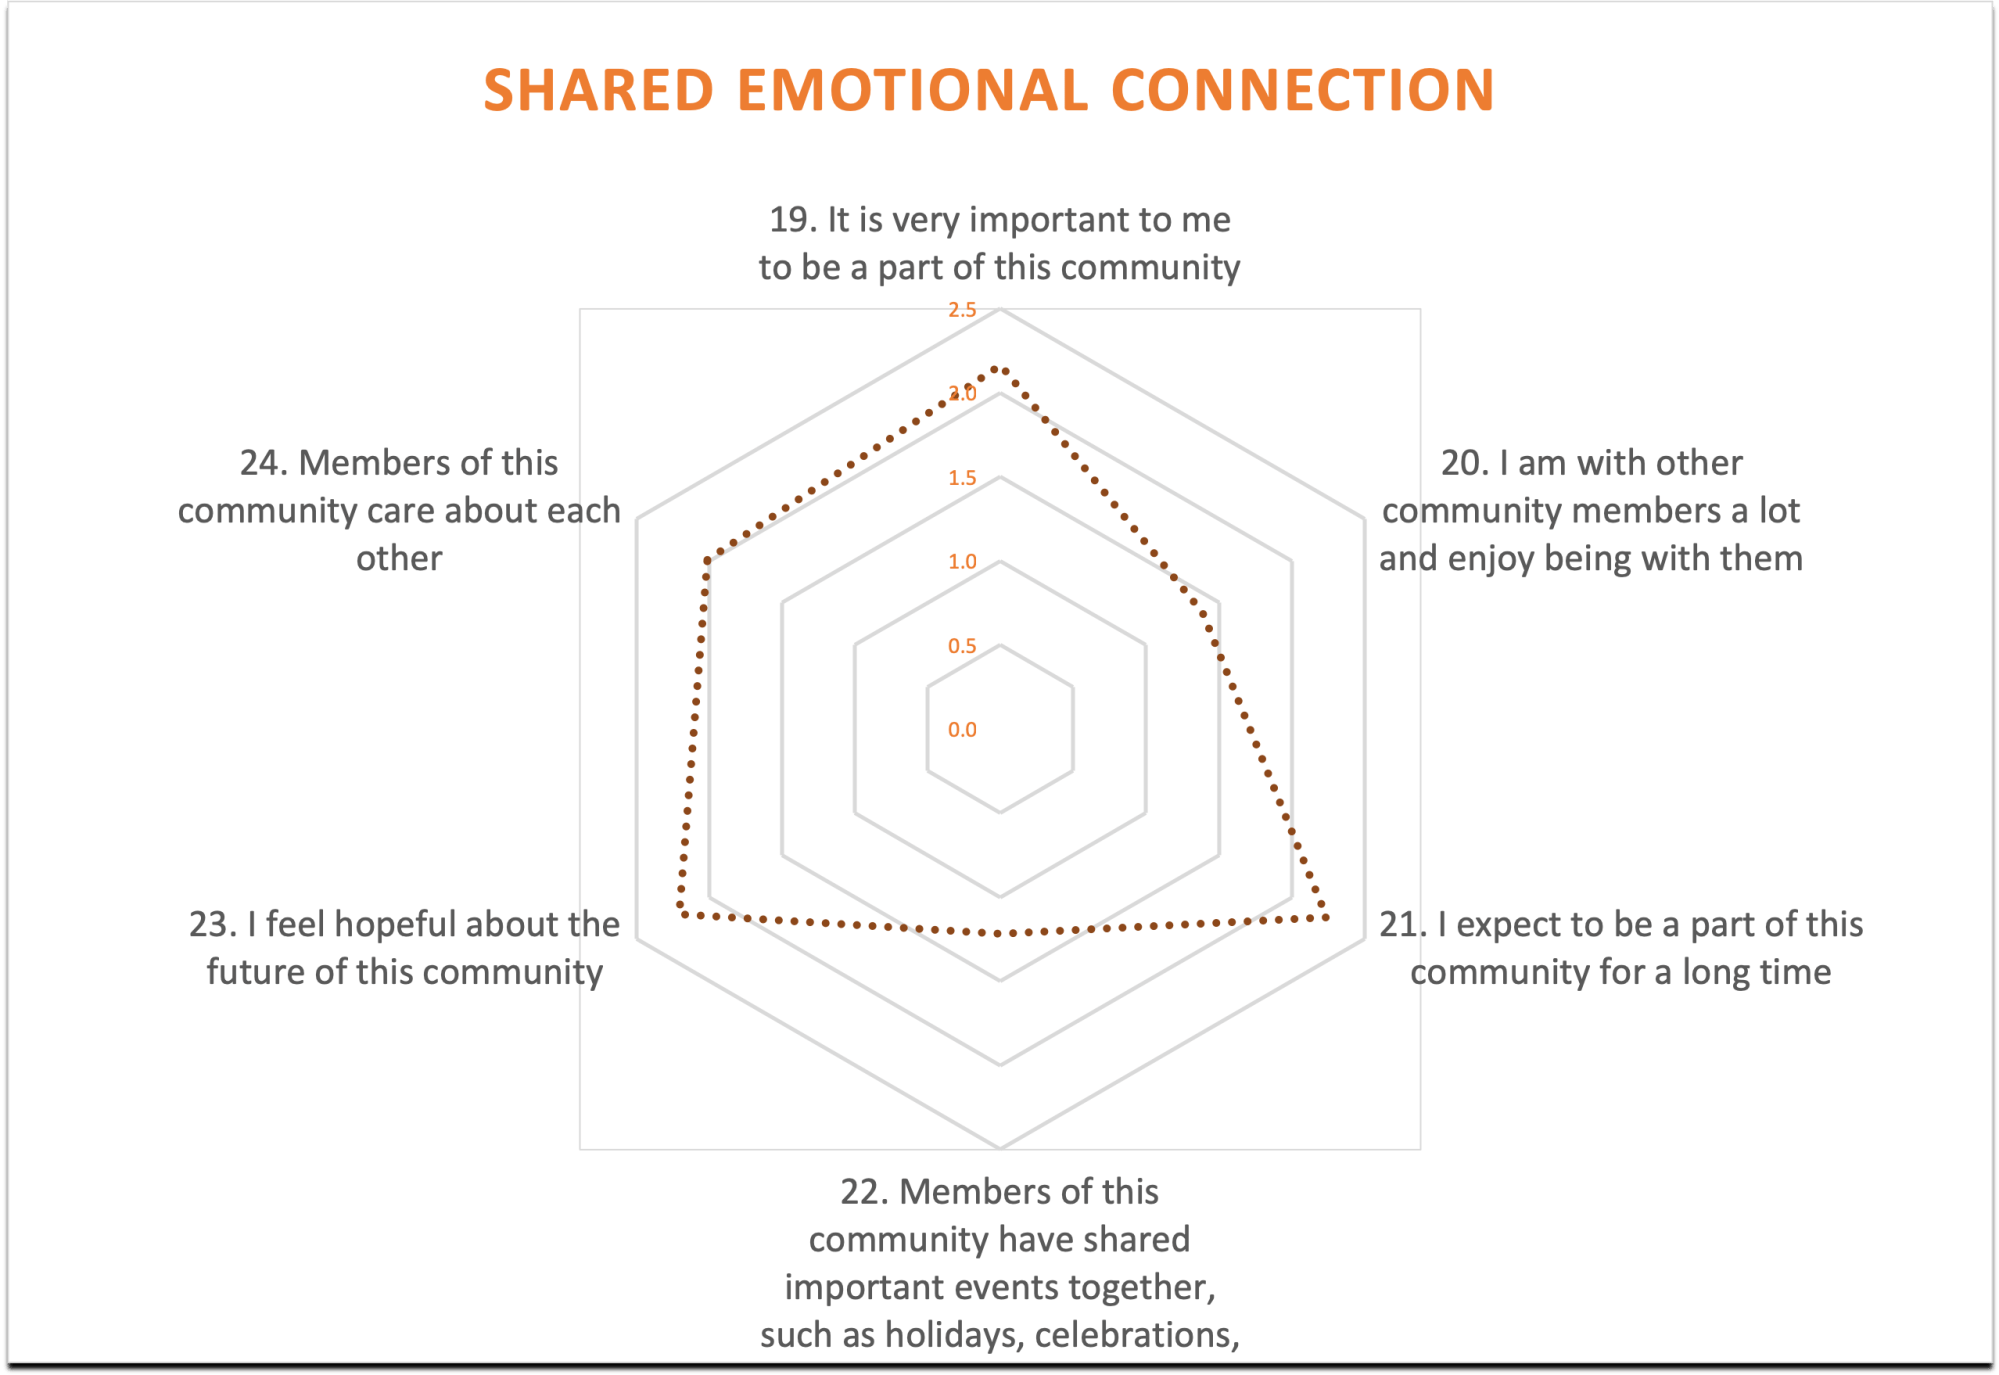 hight resolution of my members aren t sharing important shared events or spending time together online let alone in person these problems mirror the sad state of ritual and